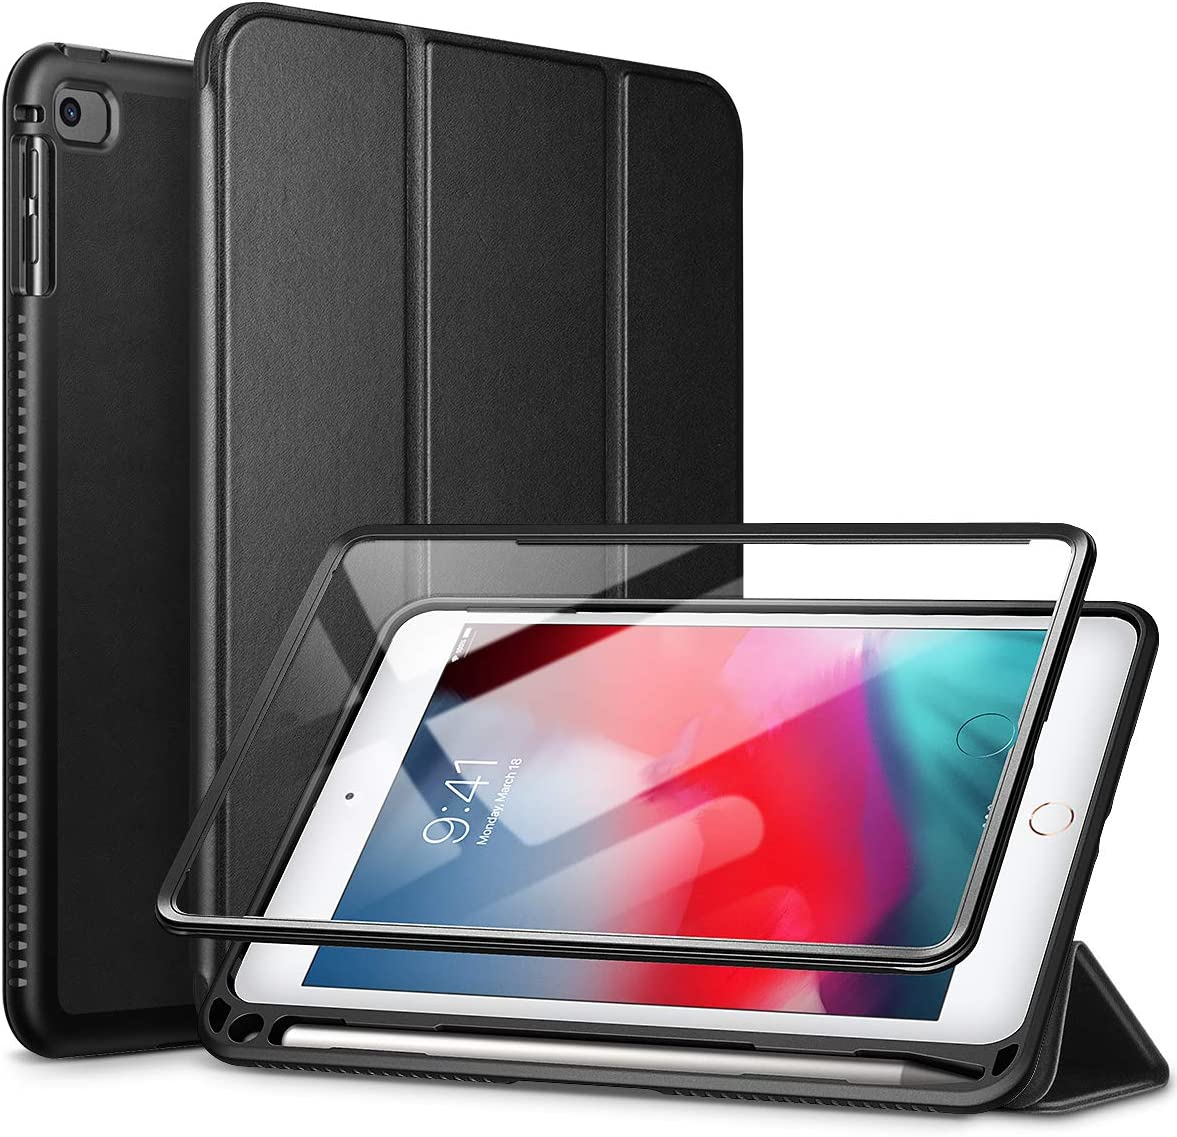 "SURITCH Case for iPad Mini 4/iPad Mini 5,【Built in Screen Protector】【Auto Sleep/Wake】【Pencil Holder】 Lightweight Leather Case Flip Cover with Stand for iPad Mini 4/Mini 5 7.9""(Black)"